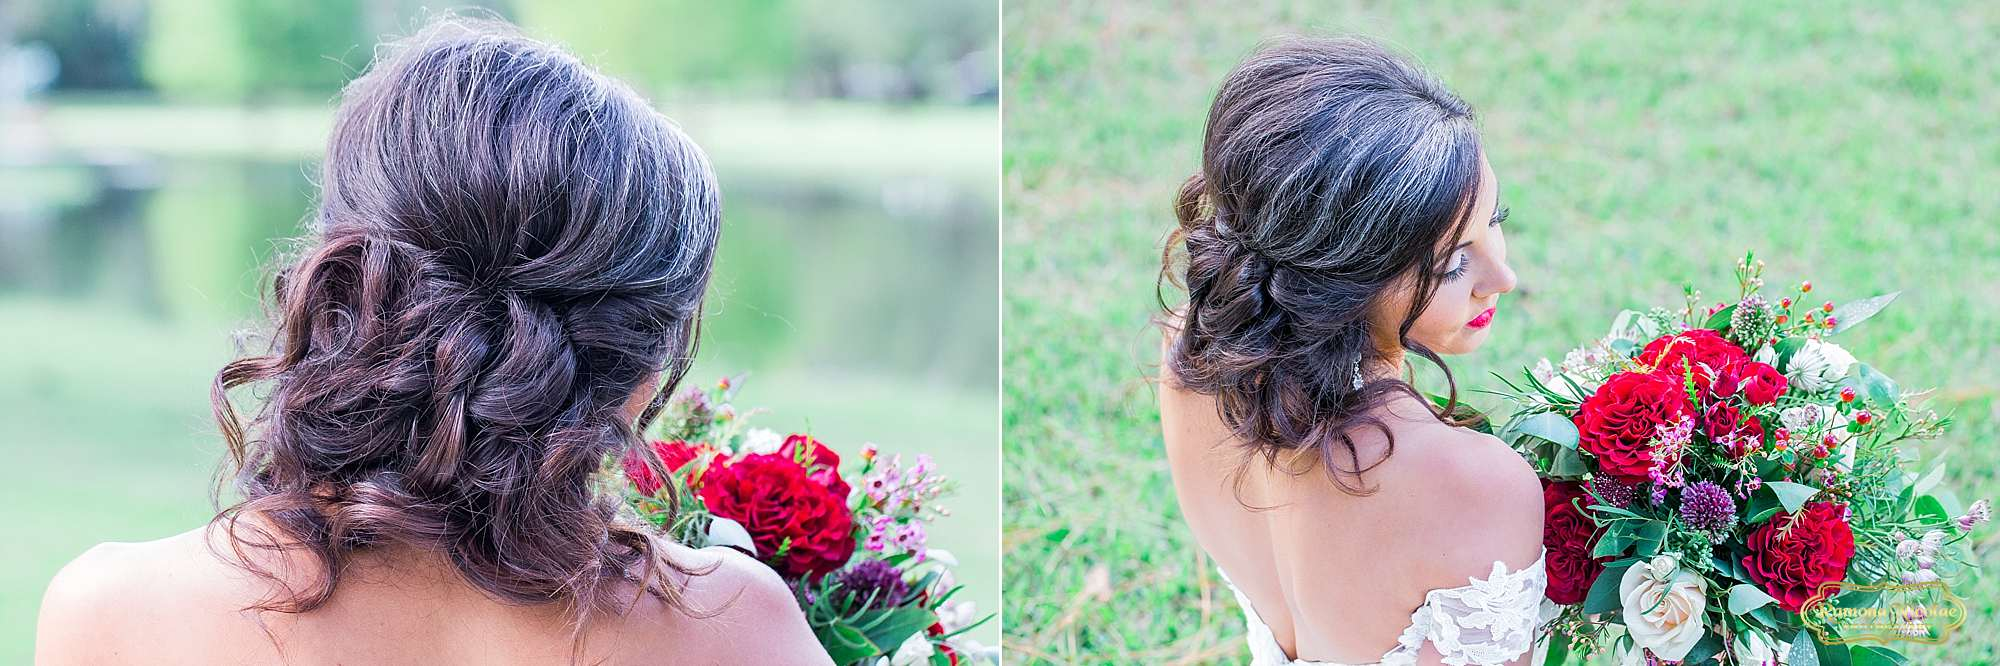 close up details of bridal hair and make up Anna Marie at Brookgreen gardens-3.jpg.jpg